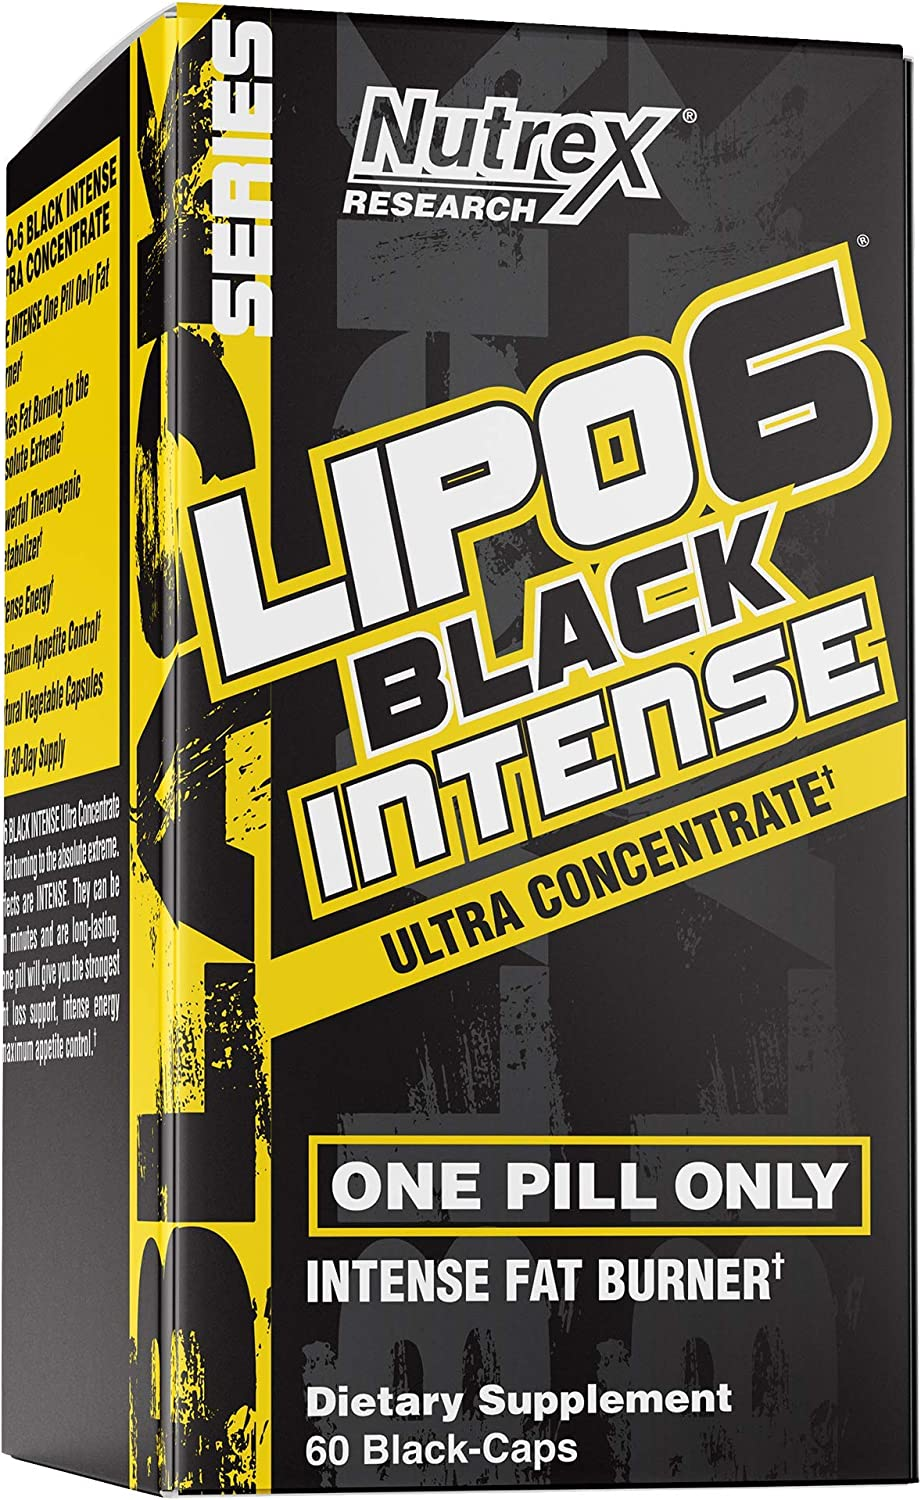 is lipo 6 a steroid